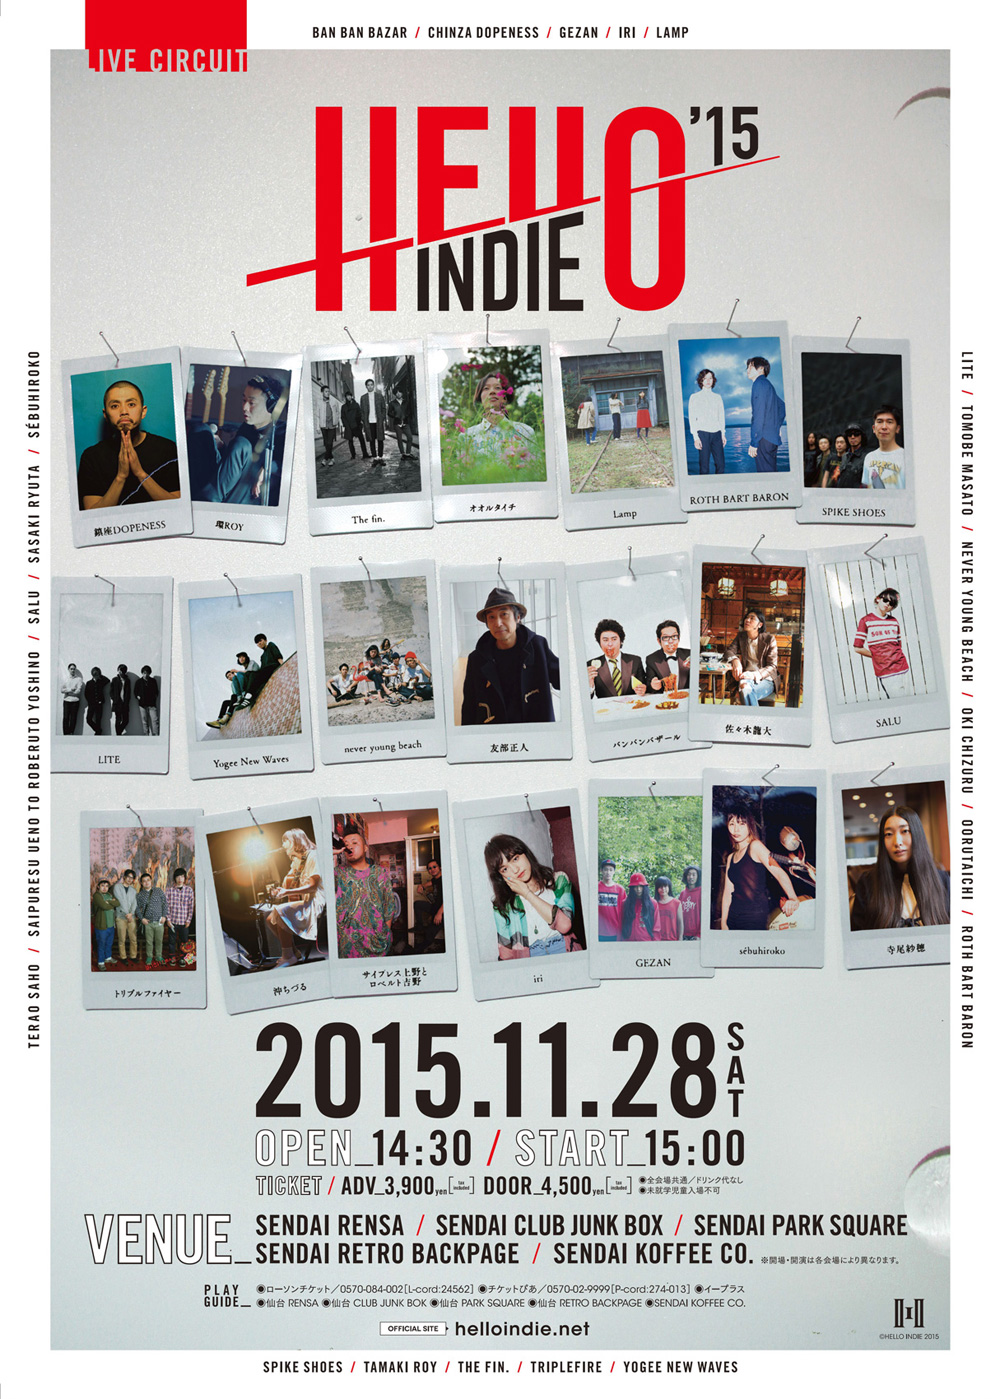 HELLO INDIE 2015 2015年11月28日(土)